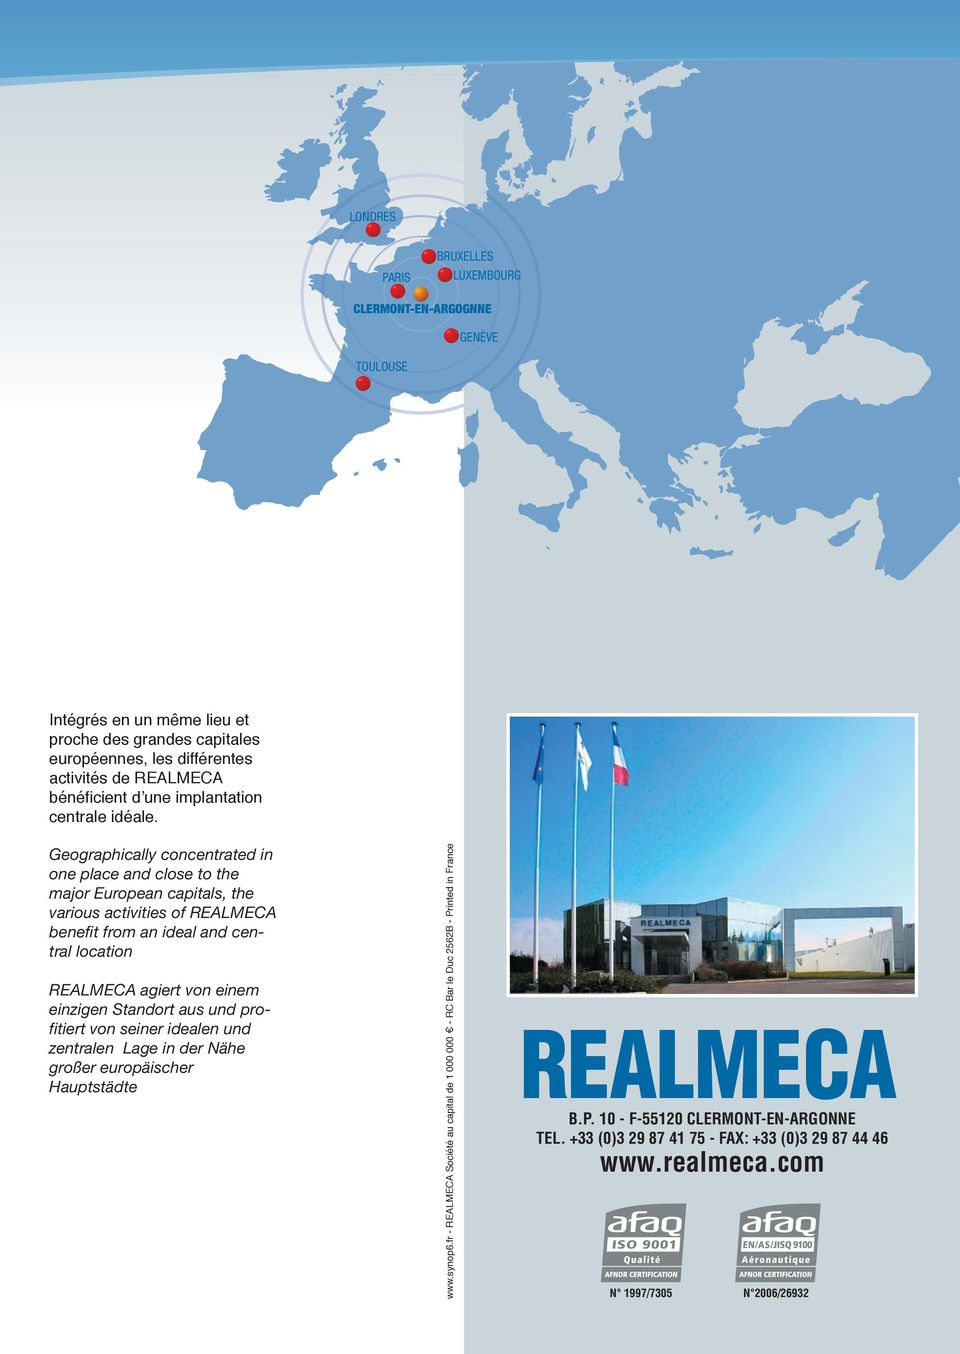 Geographically concentrated in one place and close to the major European capitals, the various activities of REALMECA benefit from an ideal and central location REALMECA agiert von einem